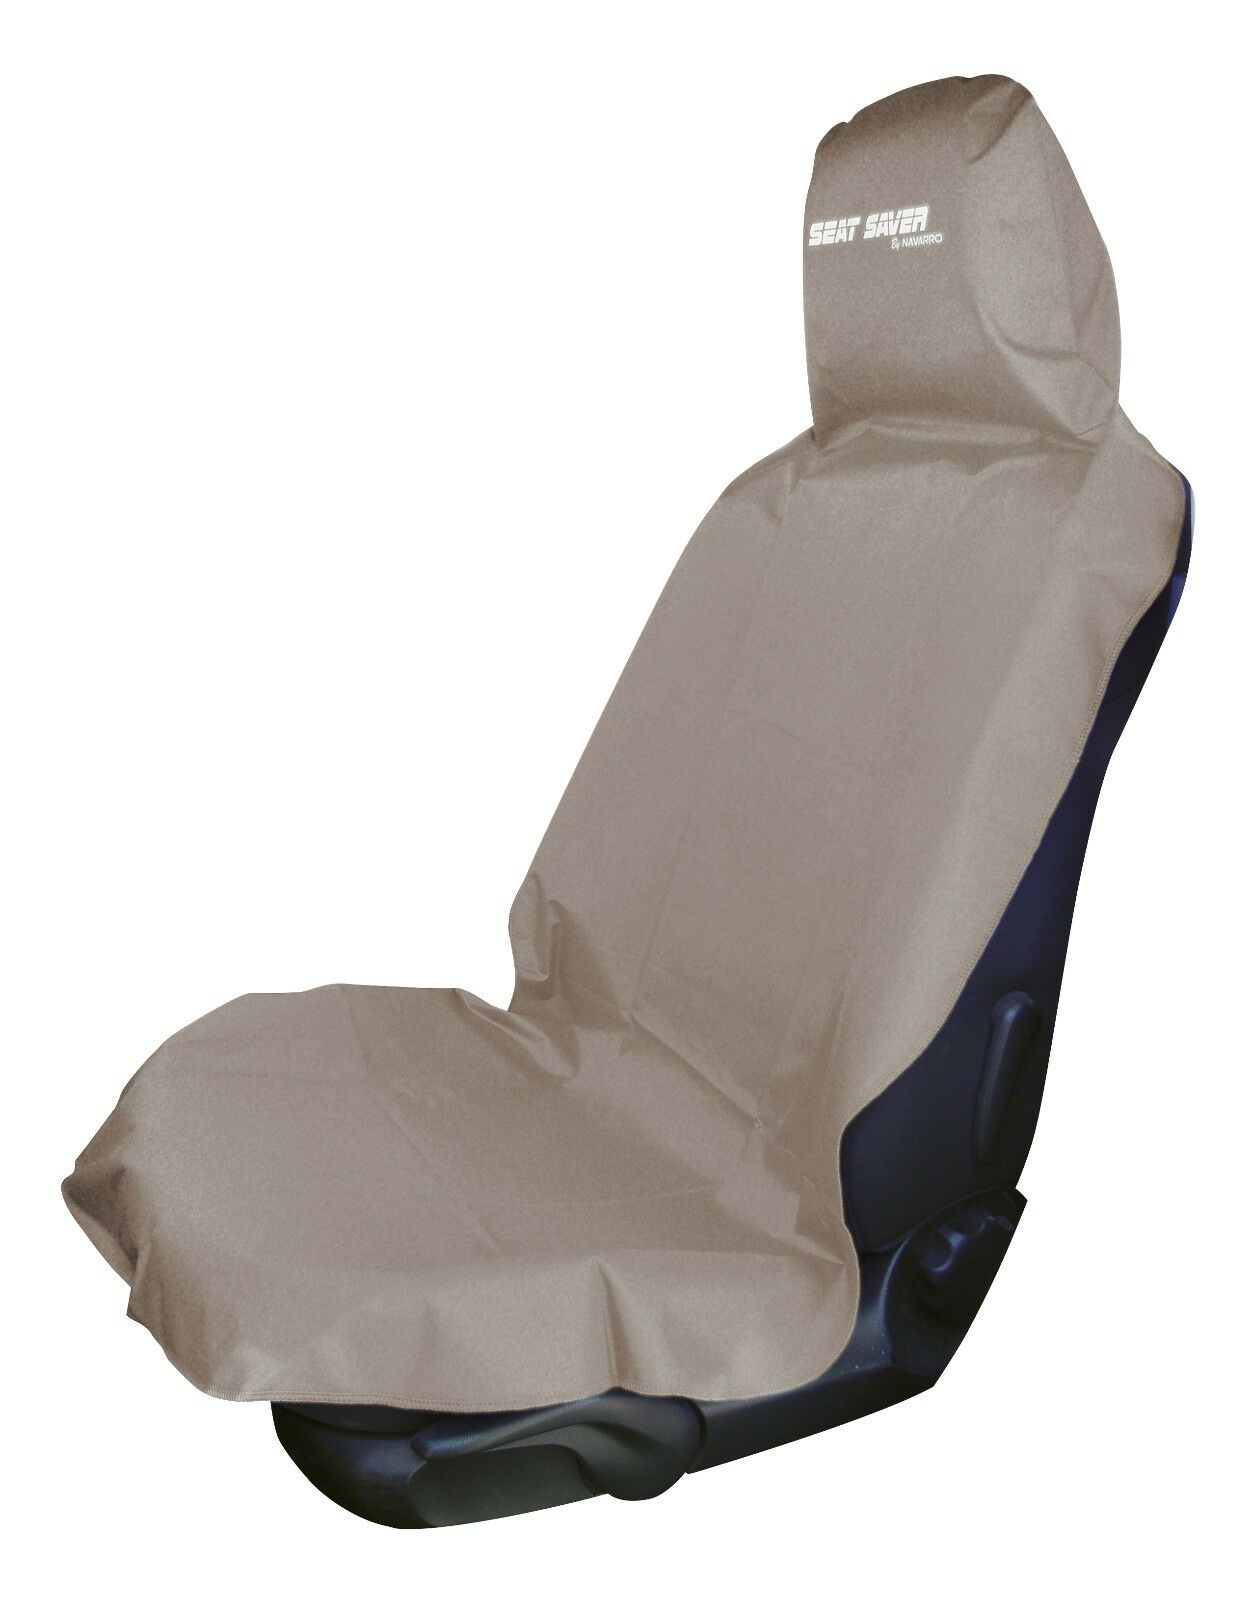 Removable Waterproof Car Front Back Seat Cover Sweat Sports Protect